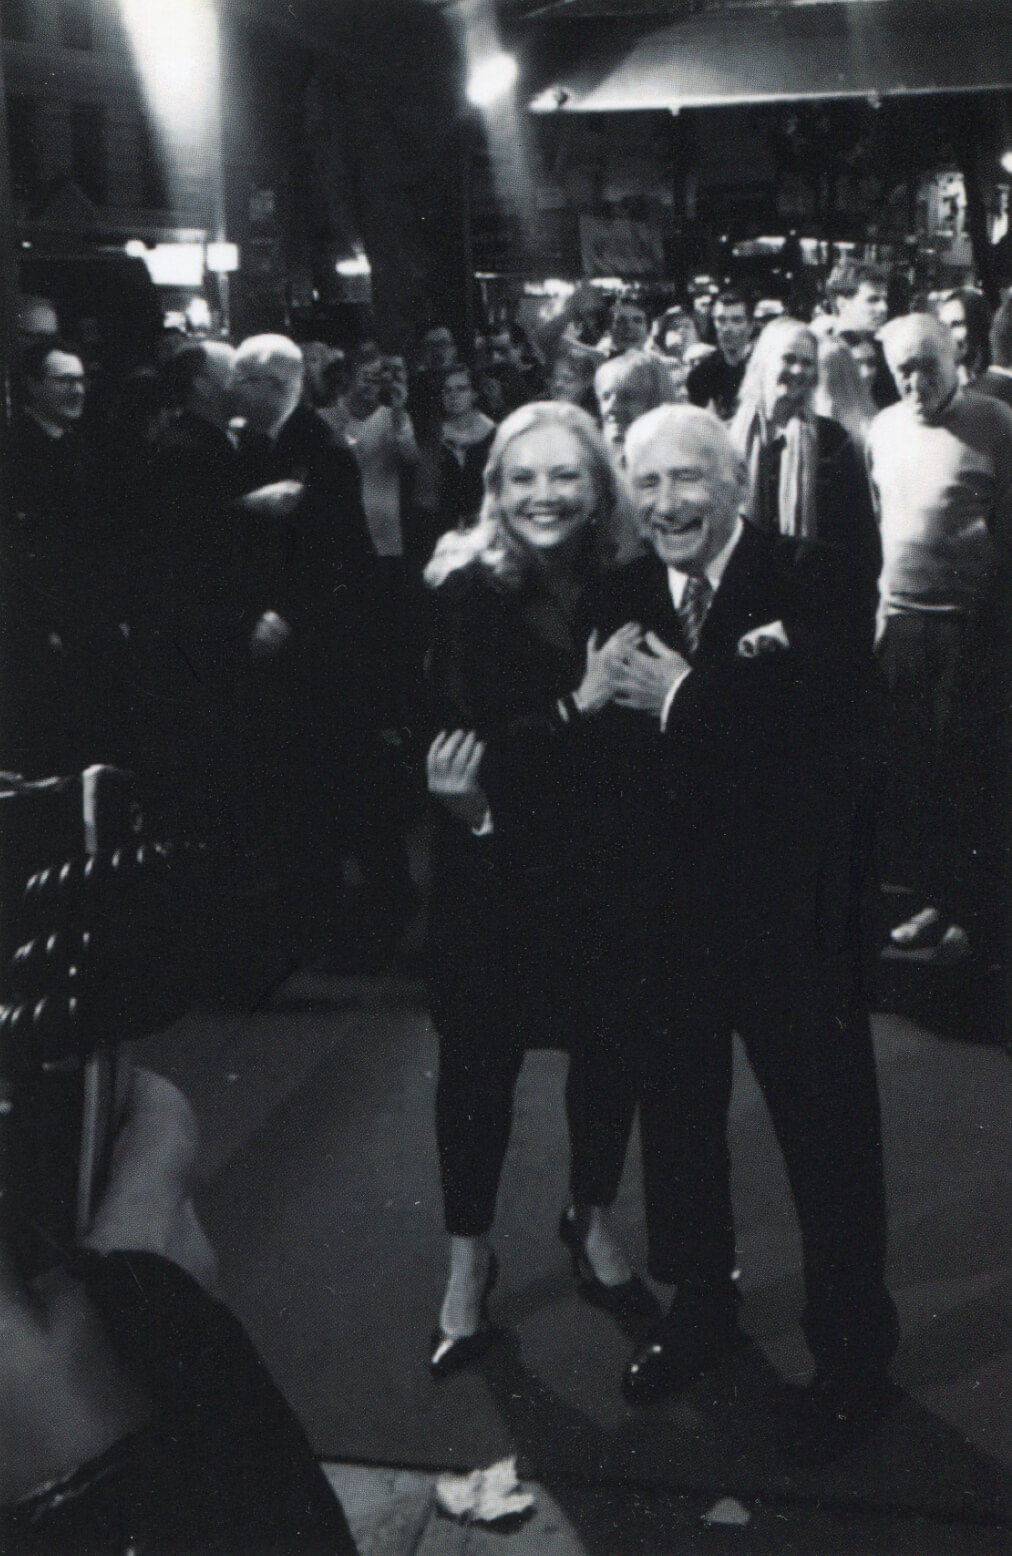 A black and white photo of Susan Stroman and Mel Brooks on the Red Carpet at the opening night of Young Frankenstein (West End).